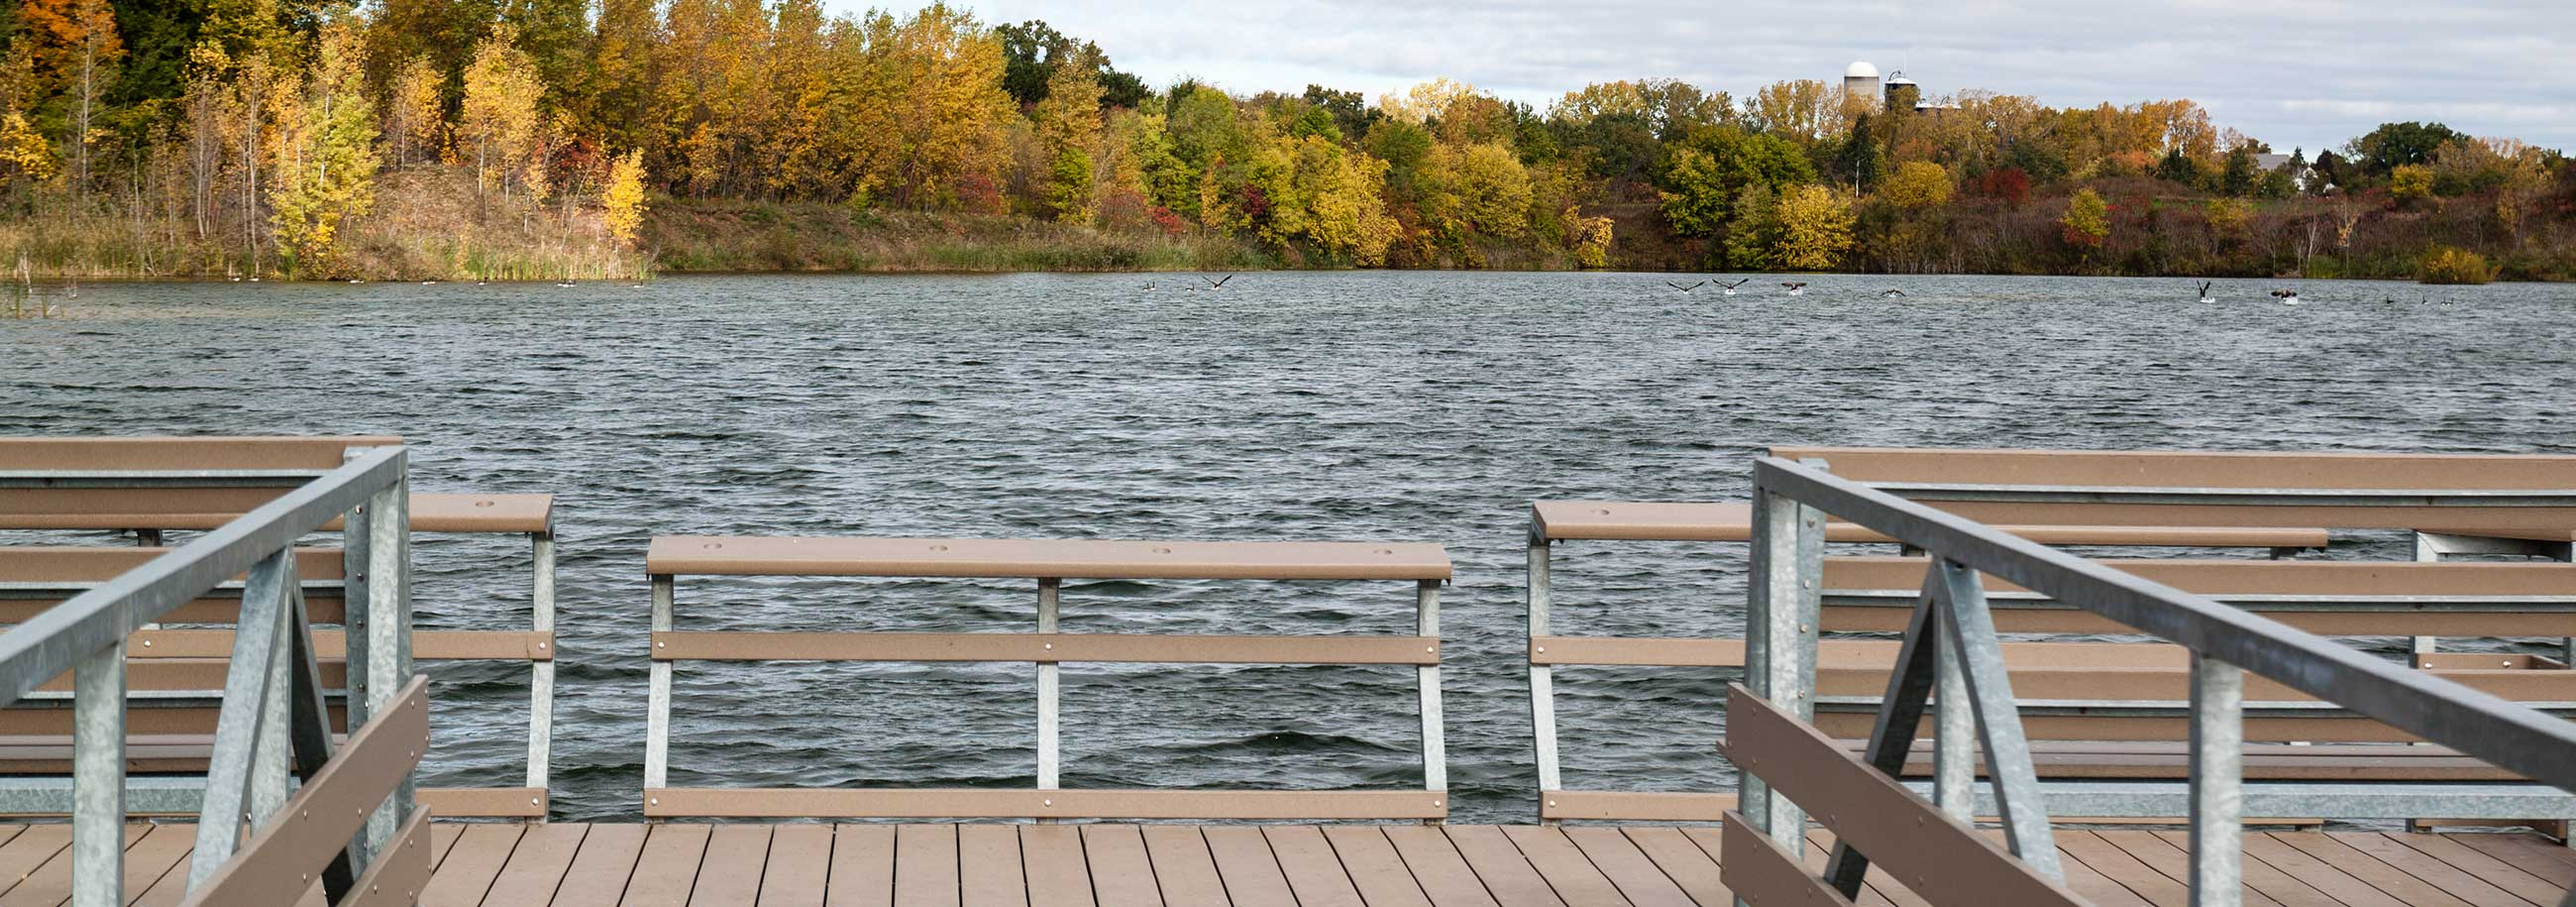 Pier on Water from Fox River Trustee Council